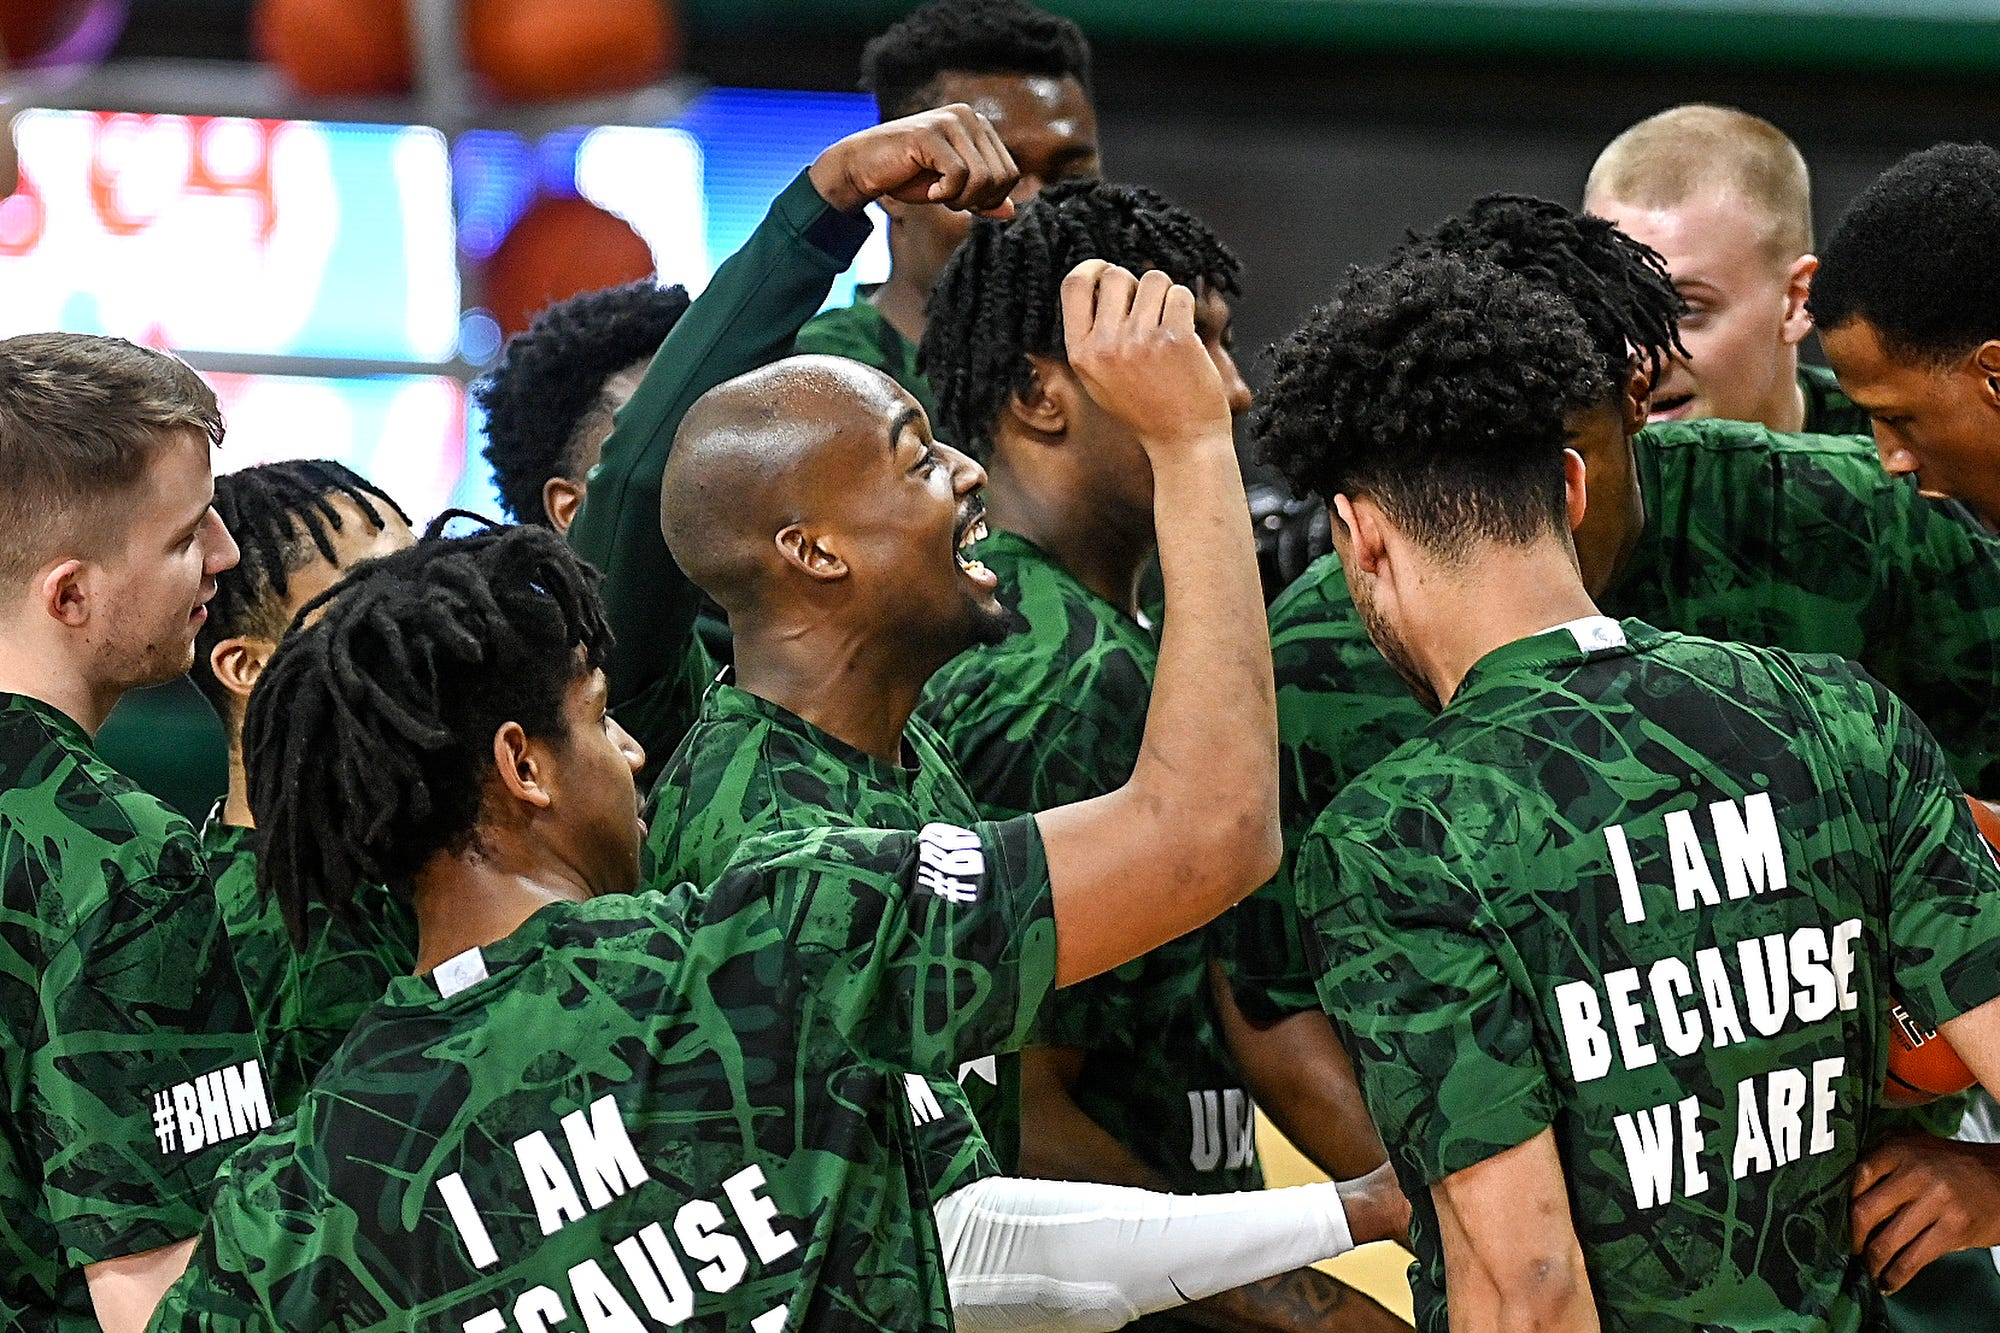 Joshua Langford: Michigan State basketball shows its mettle in upset of No. 2 Michigan